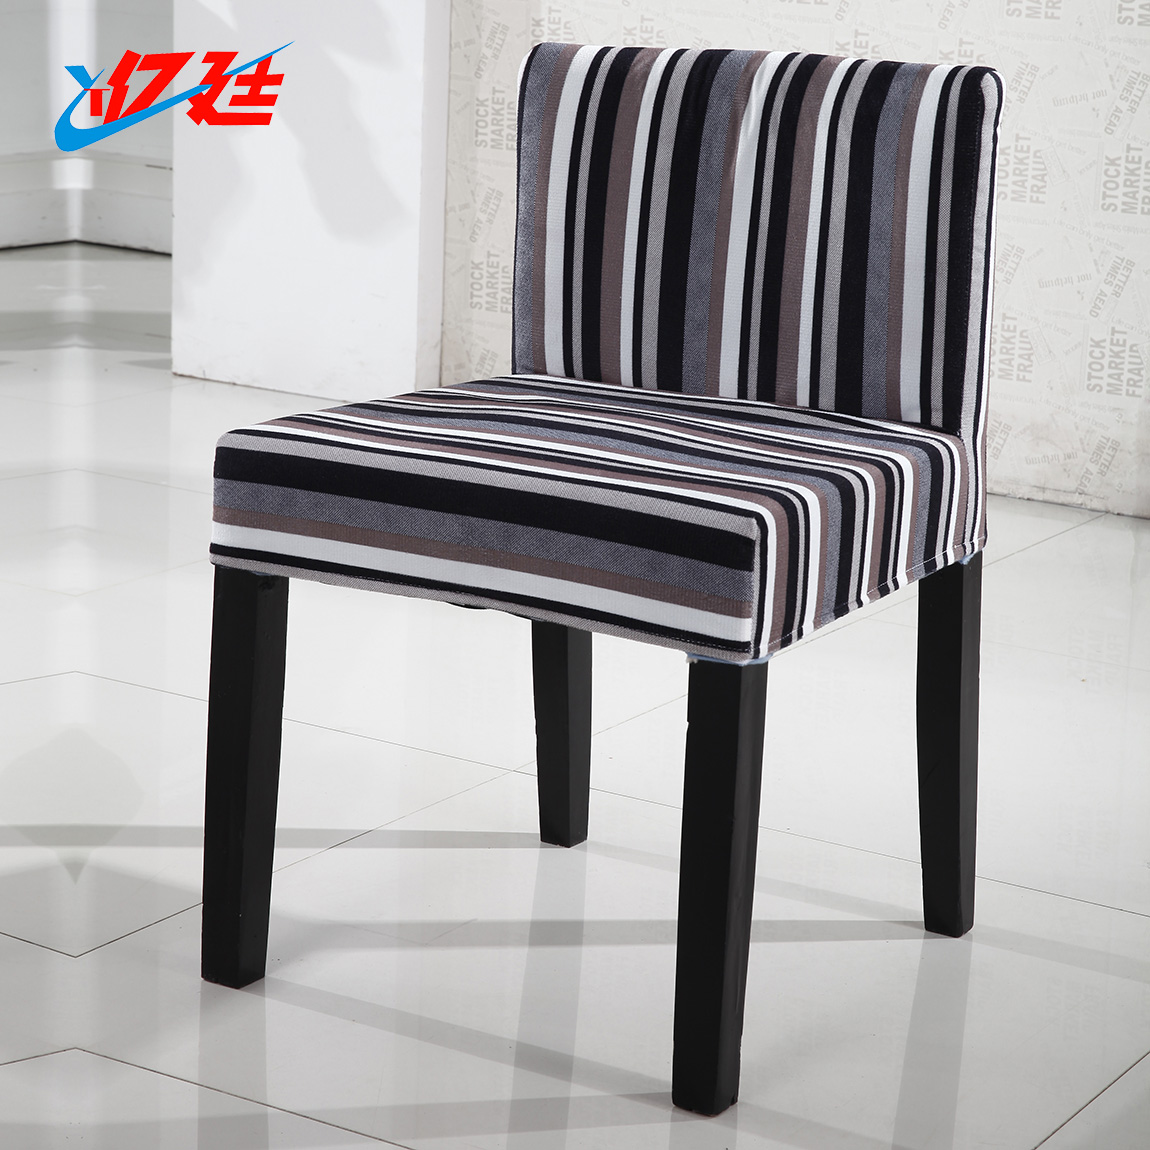 Western Chairs Buy Western Hotel Restaurant Dining Chairs Cafe Chairs Tea Dessert